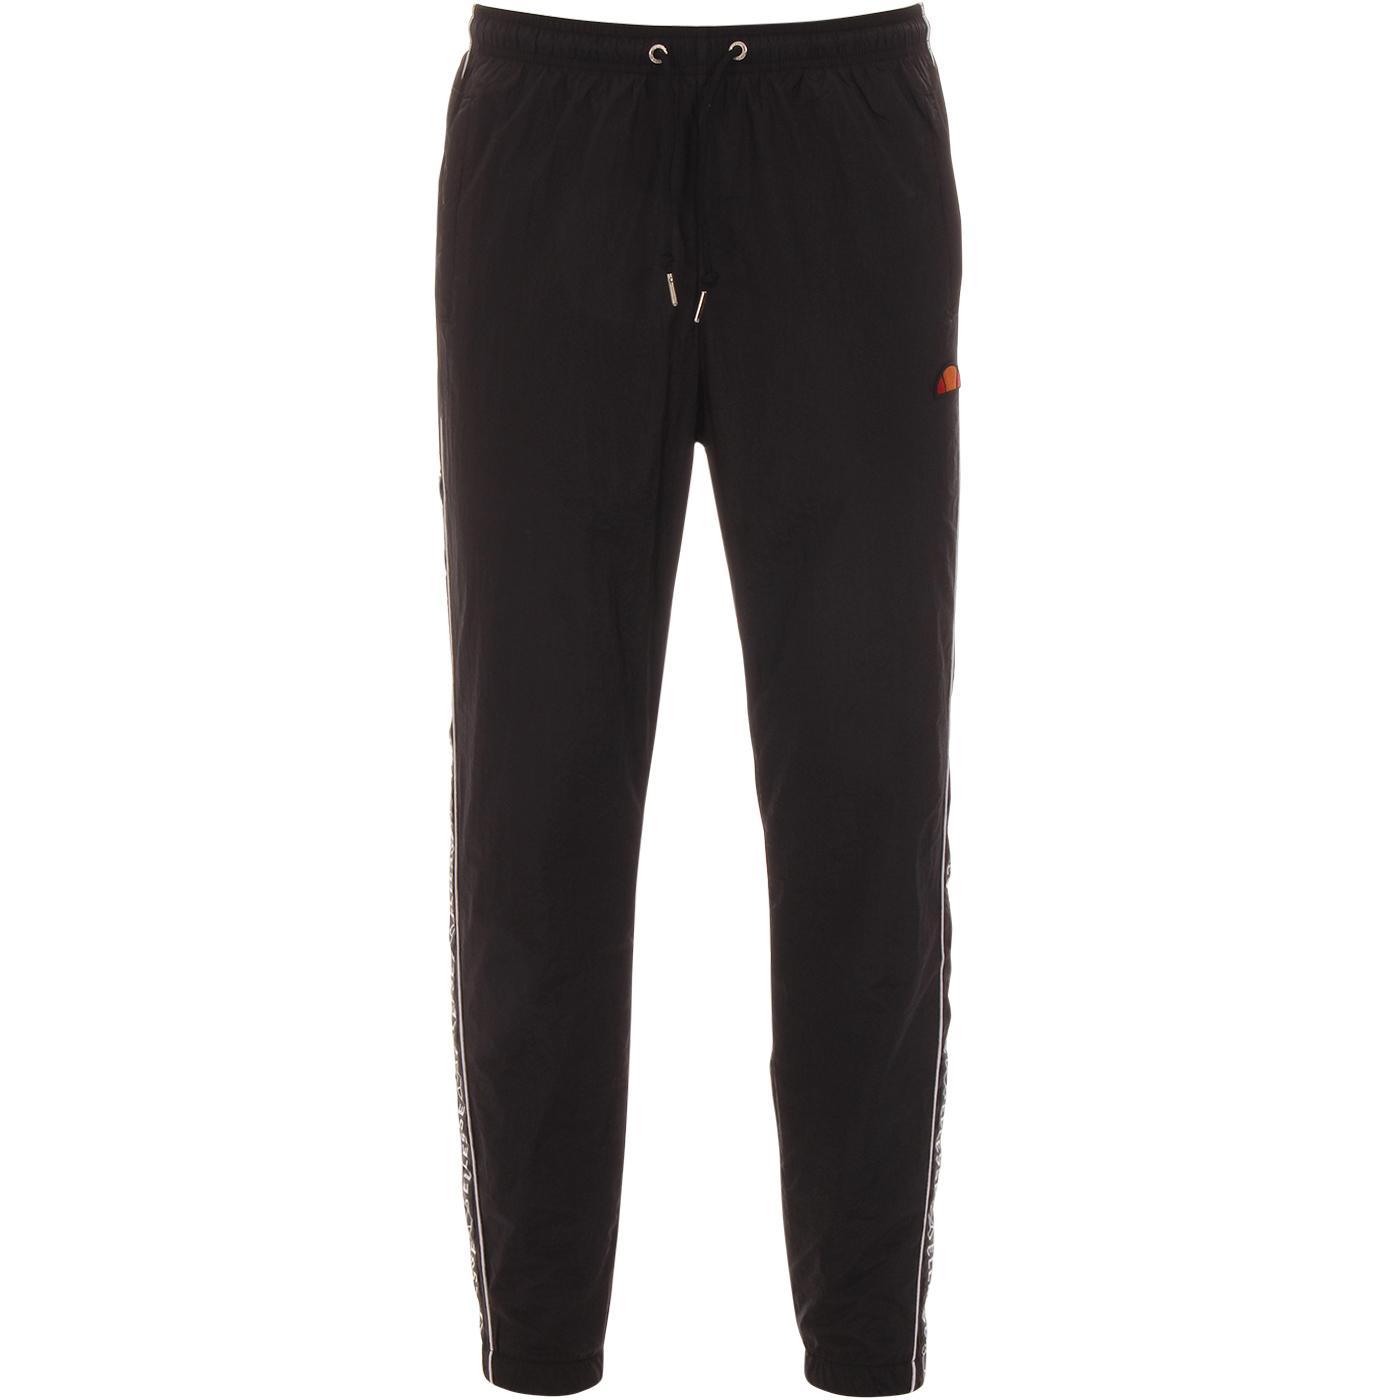 Bandino ELLESSE Men's Taped Leg Track Pants BLACK